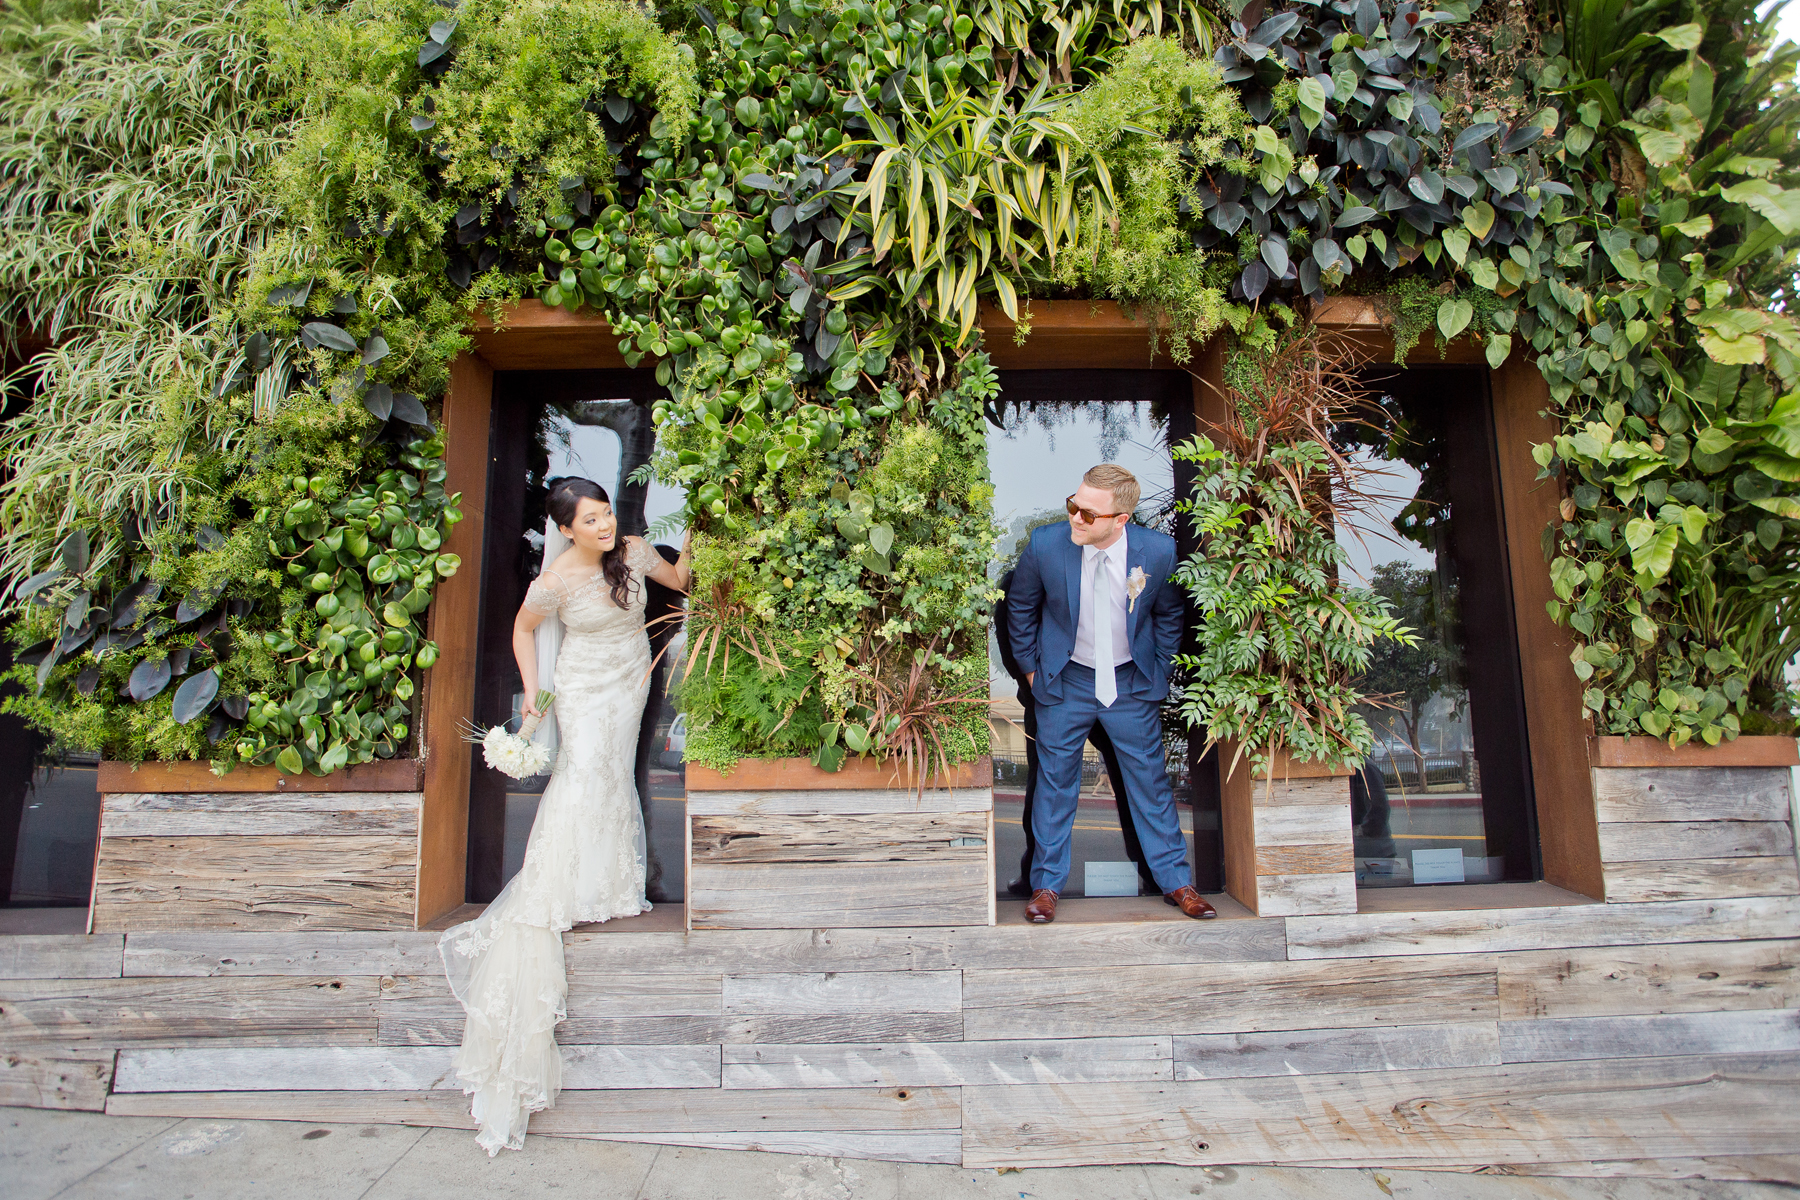 K+K's Charming and Connected Wedding in Laguna Beach